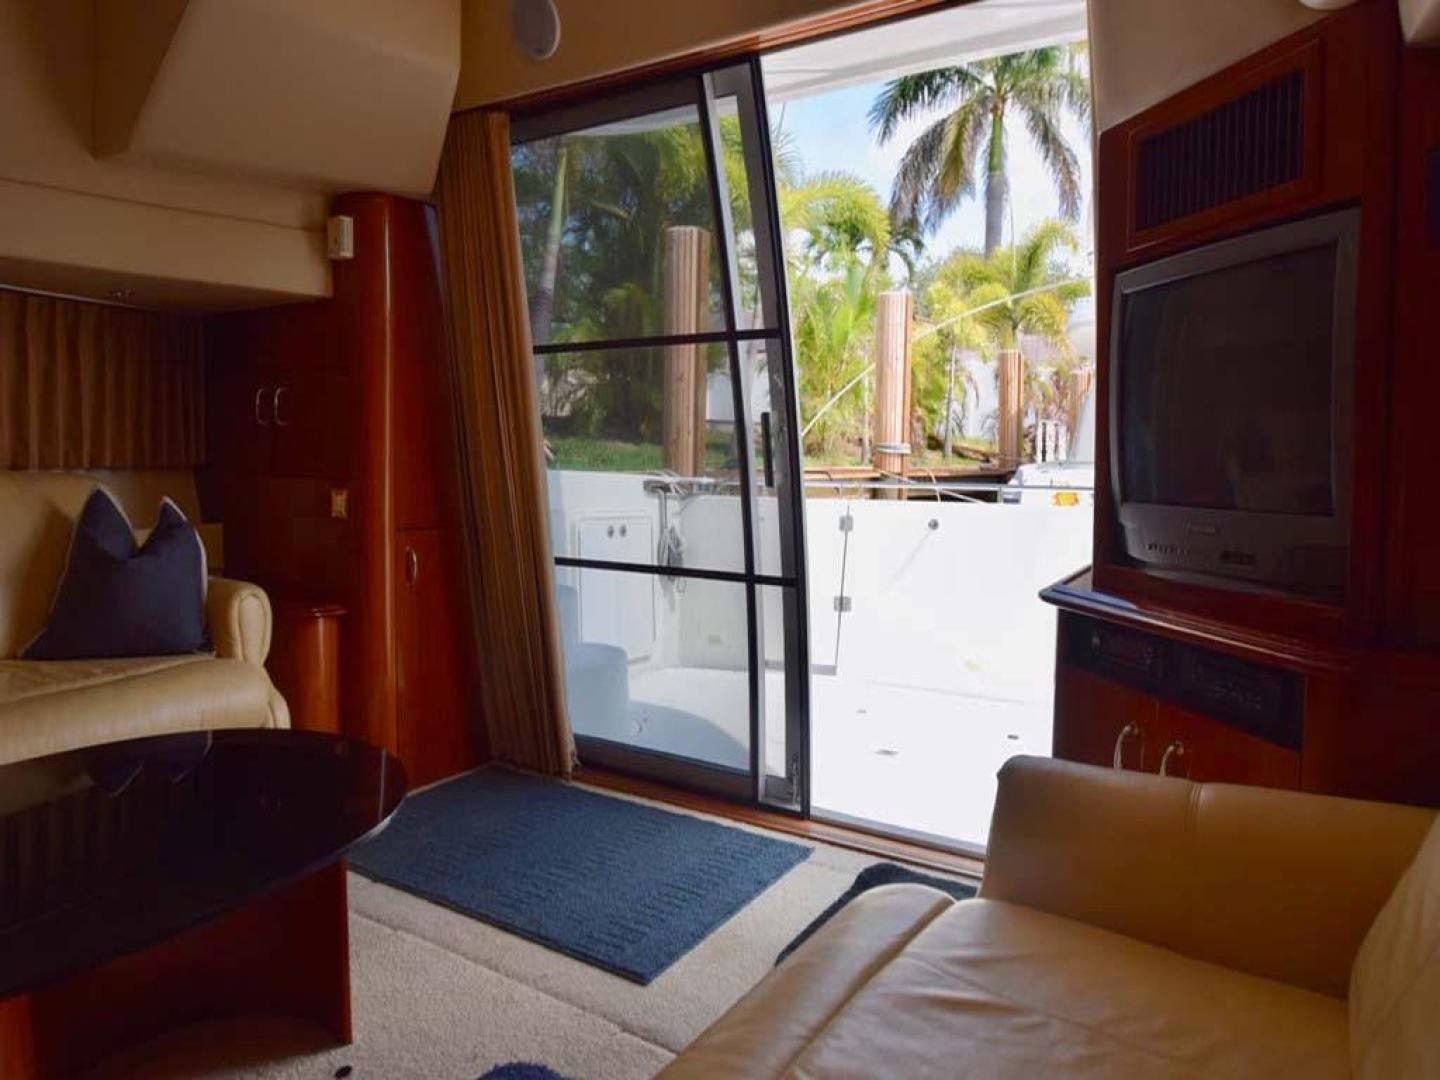 Carver-42 Mariner 2004-Livin Life Fort Lauderdale-Florida-United States-913171 | Thumbnail